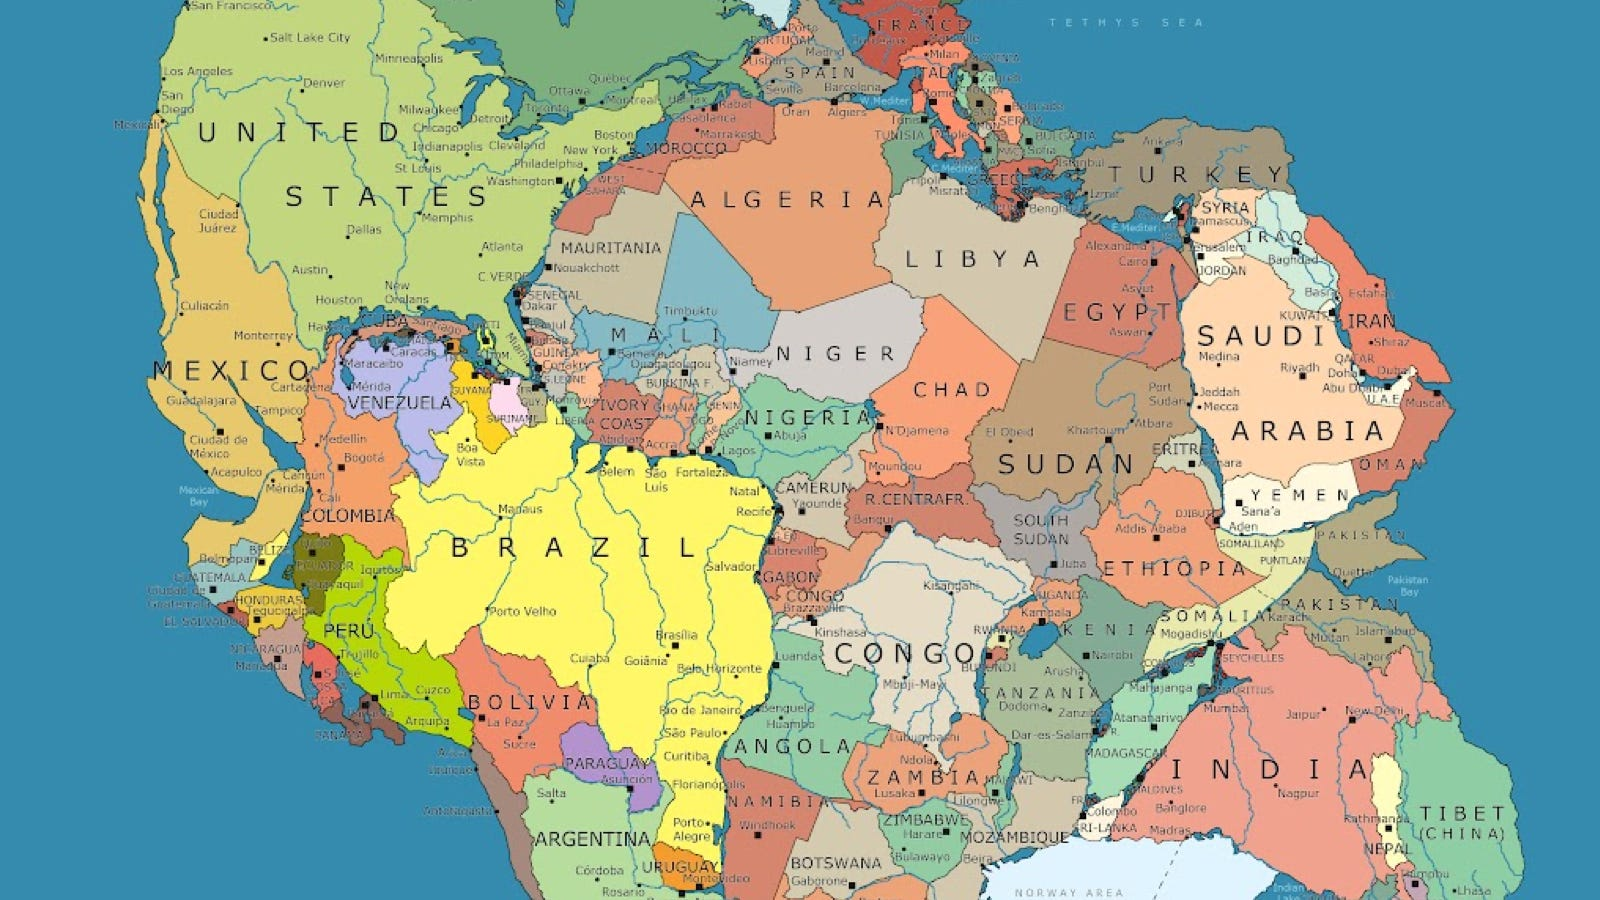 Heres What Pangea Looks Like Mapped With Modern Political Borders - World map la